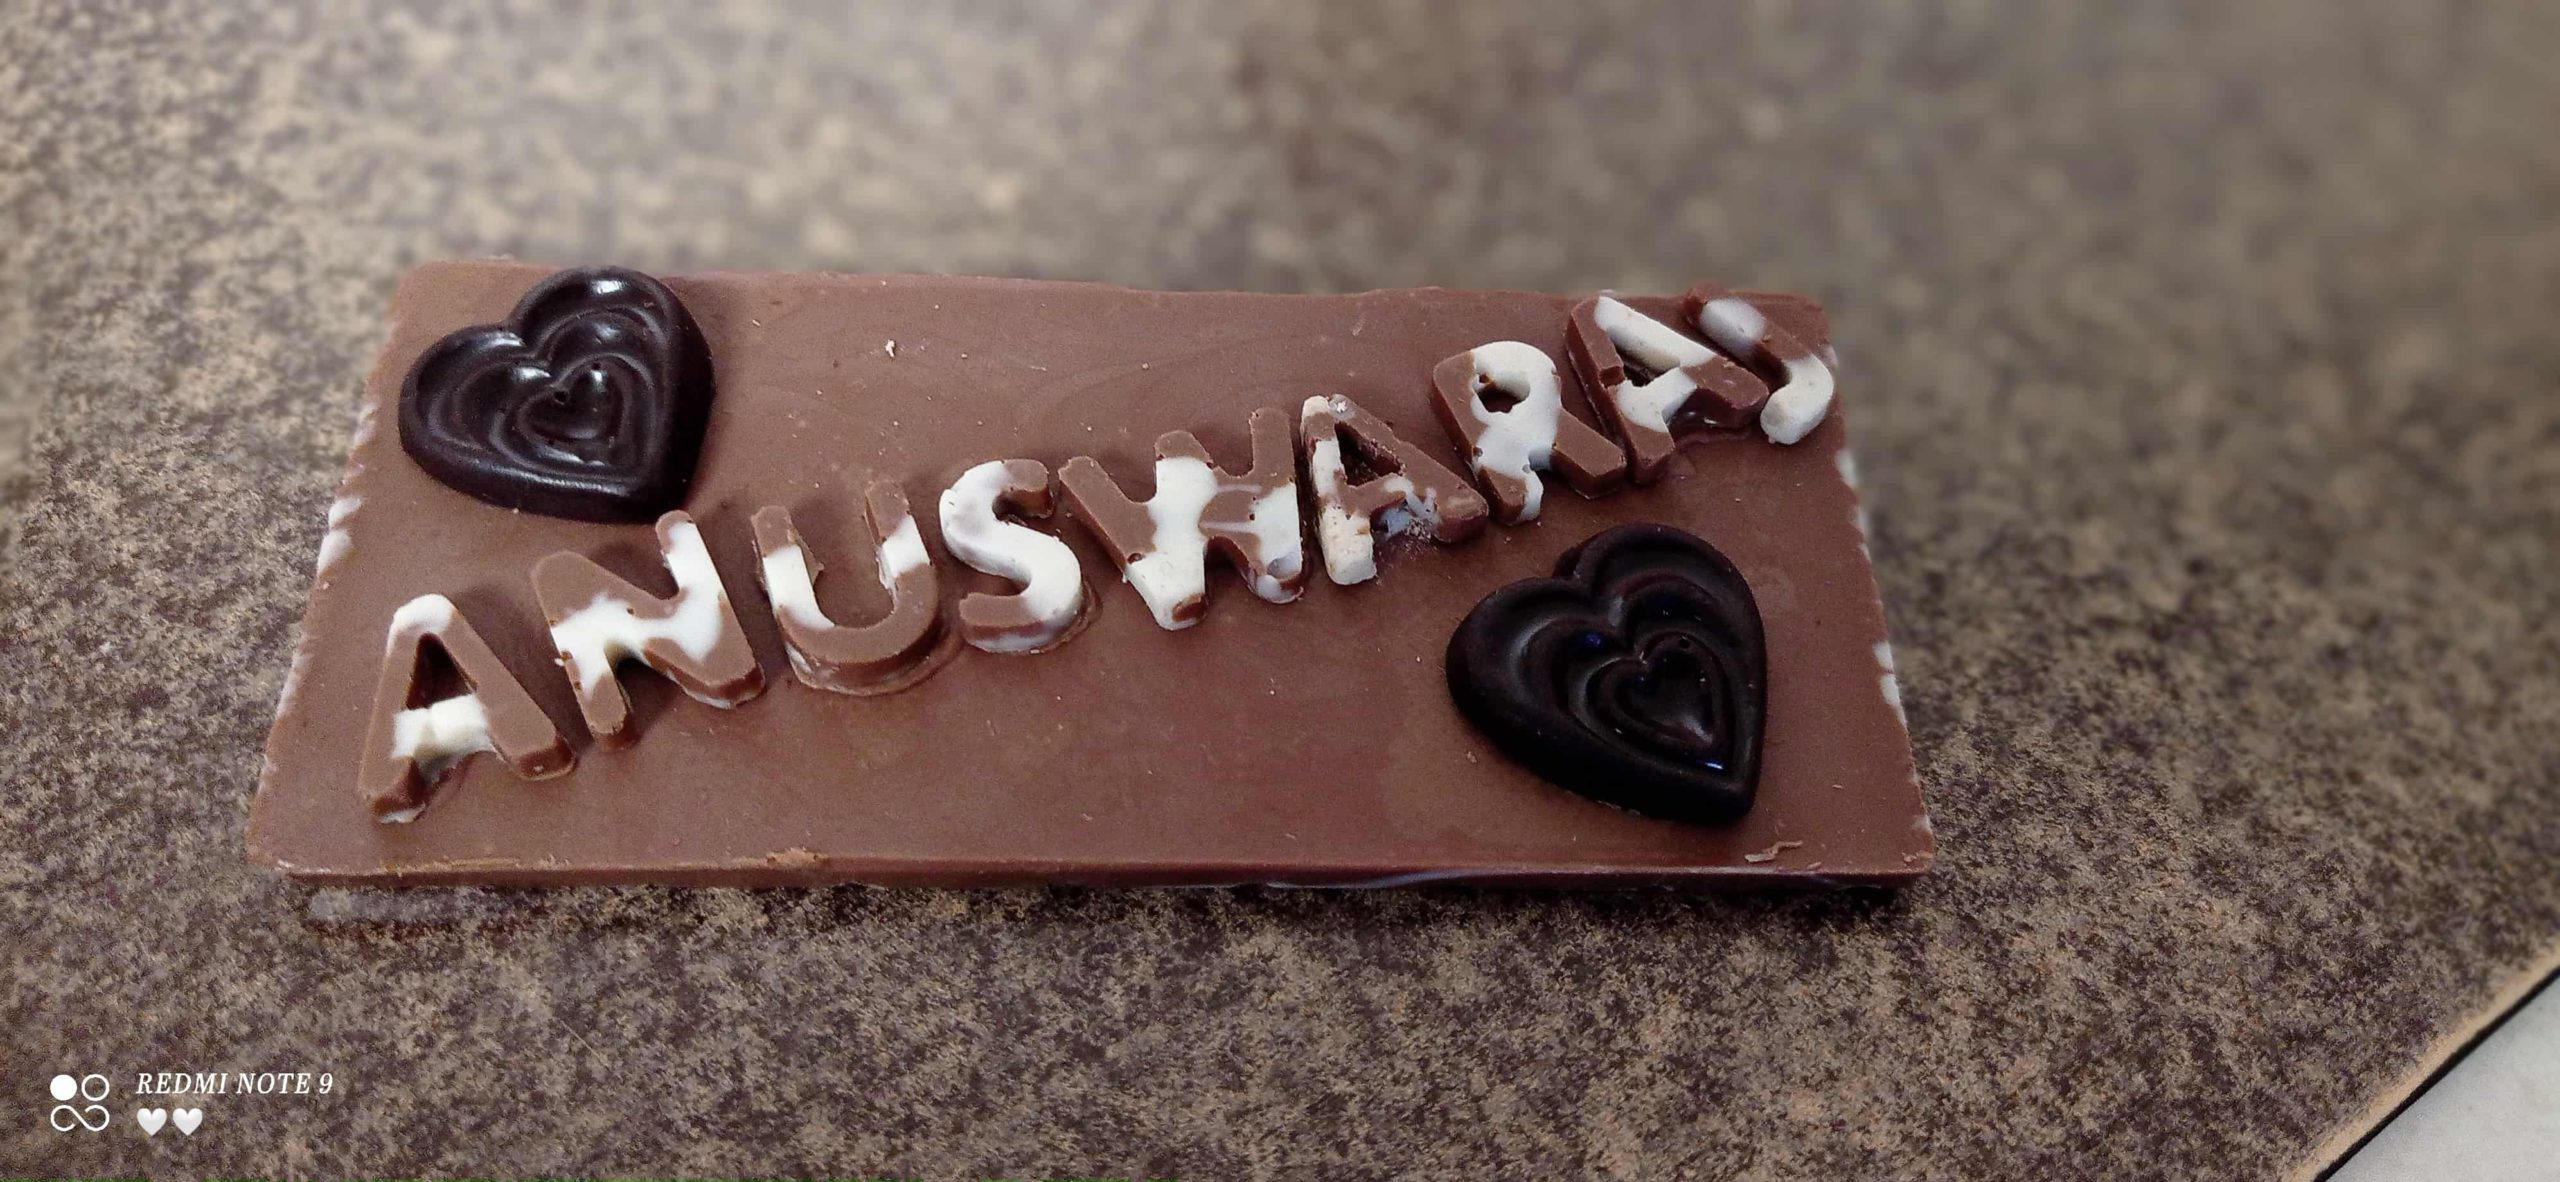 Chocolate Bar with Message Designs, Images, Price Near Me